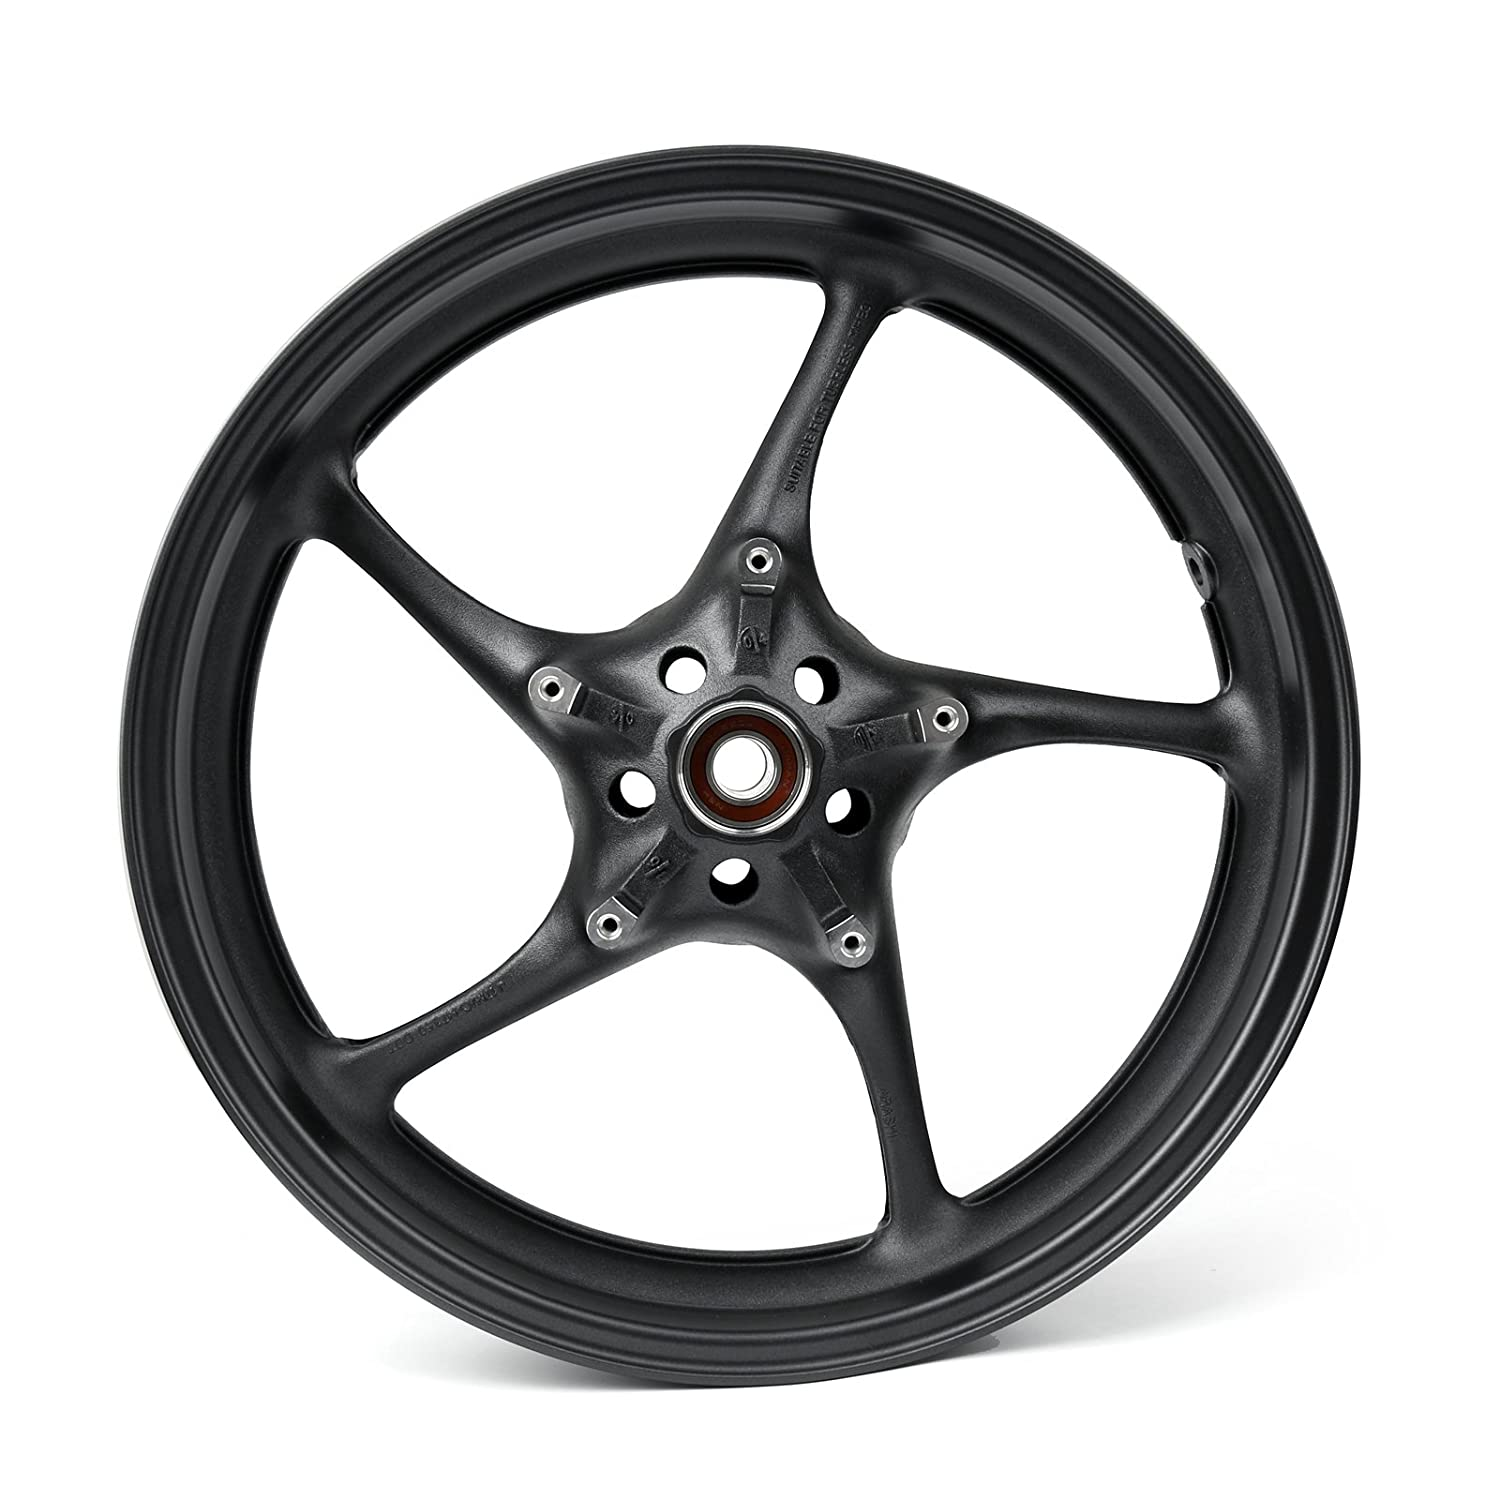 Areyourshop Front Wheel Rim 17'x3.5' Motorcycle For Yamaha YZF R1 R6 2006-2012 FZ1 2006-2009